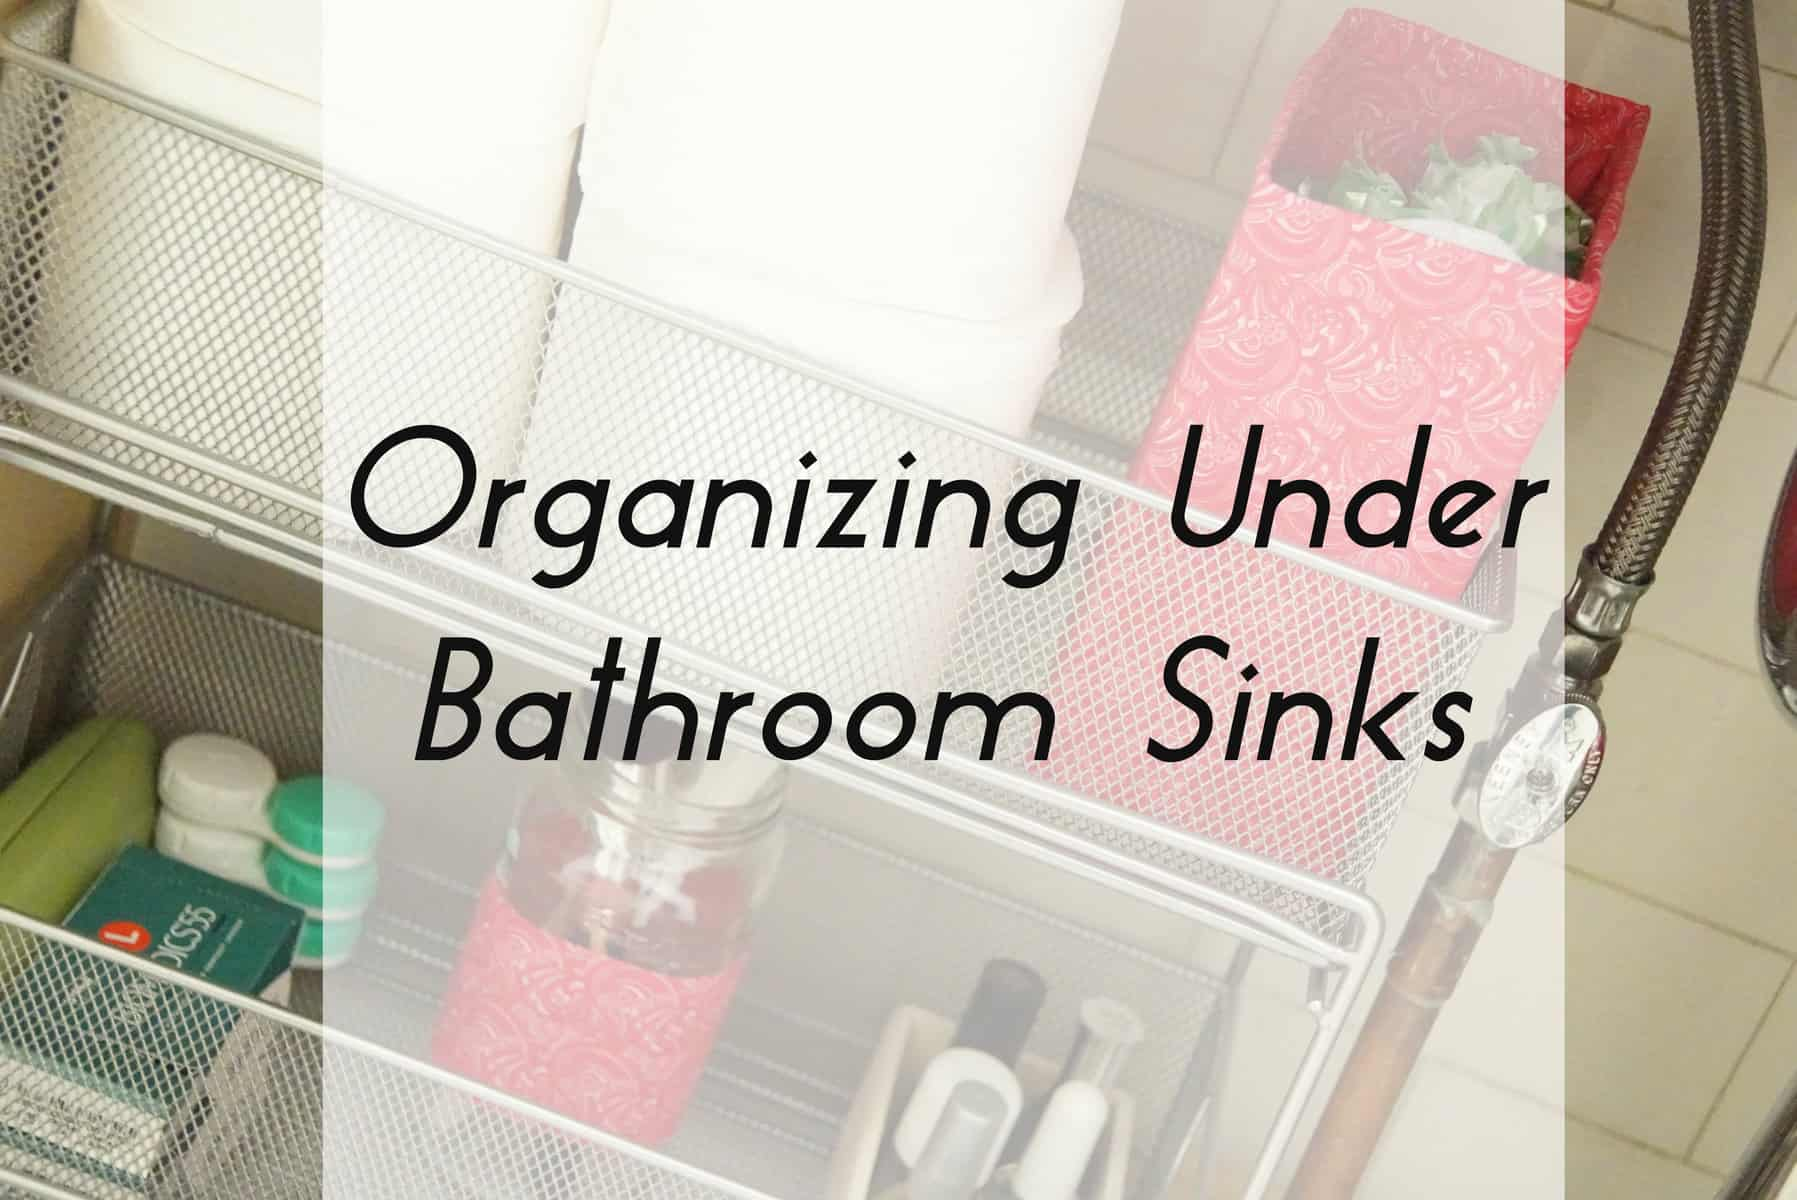 how to organize under the bathroom sink organizing bathroom sinks heartwork organizing 26160